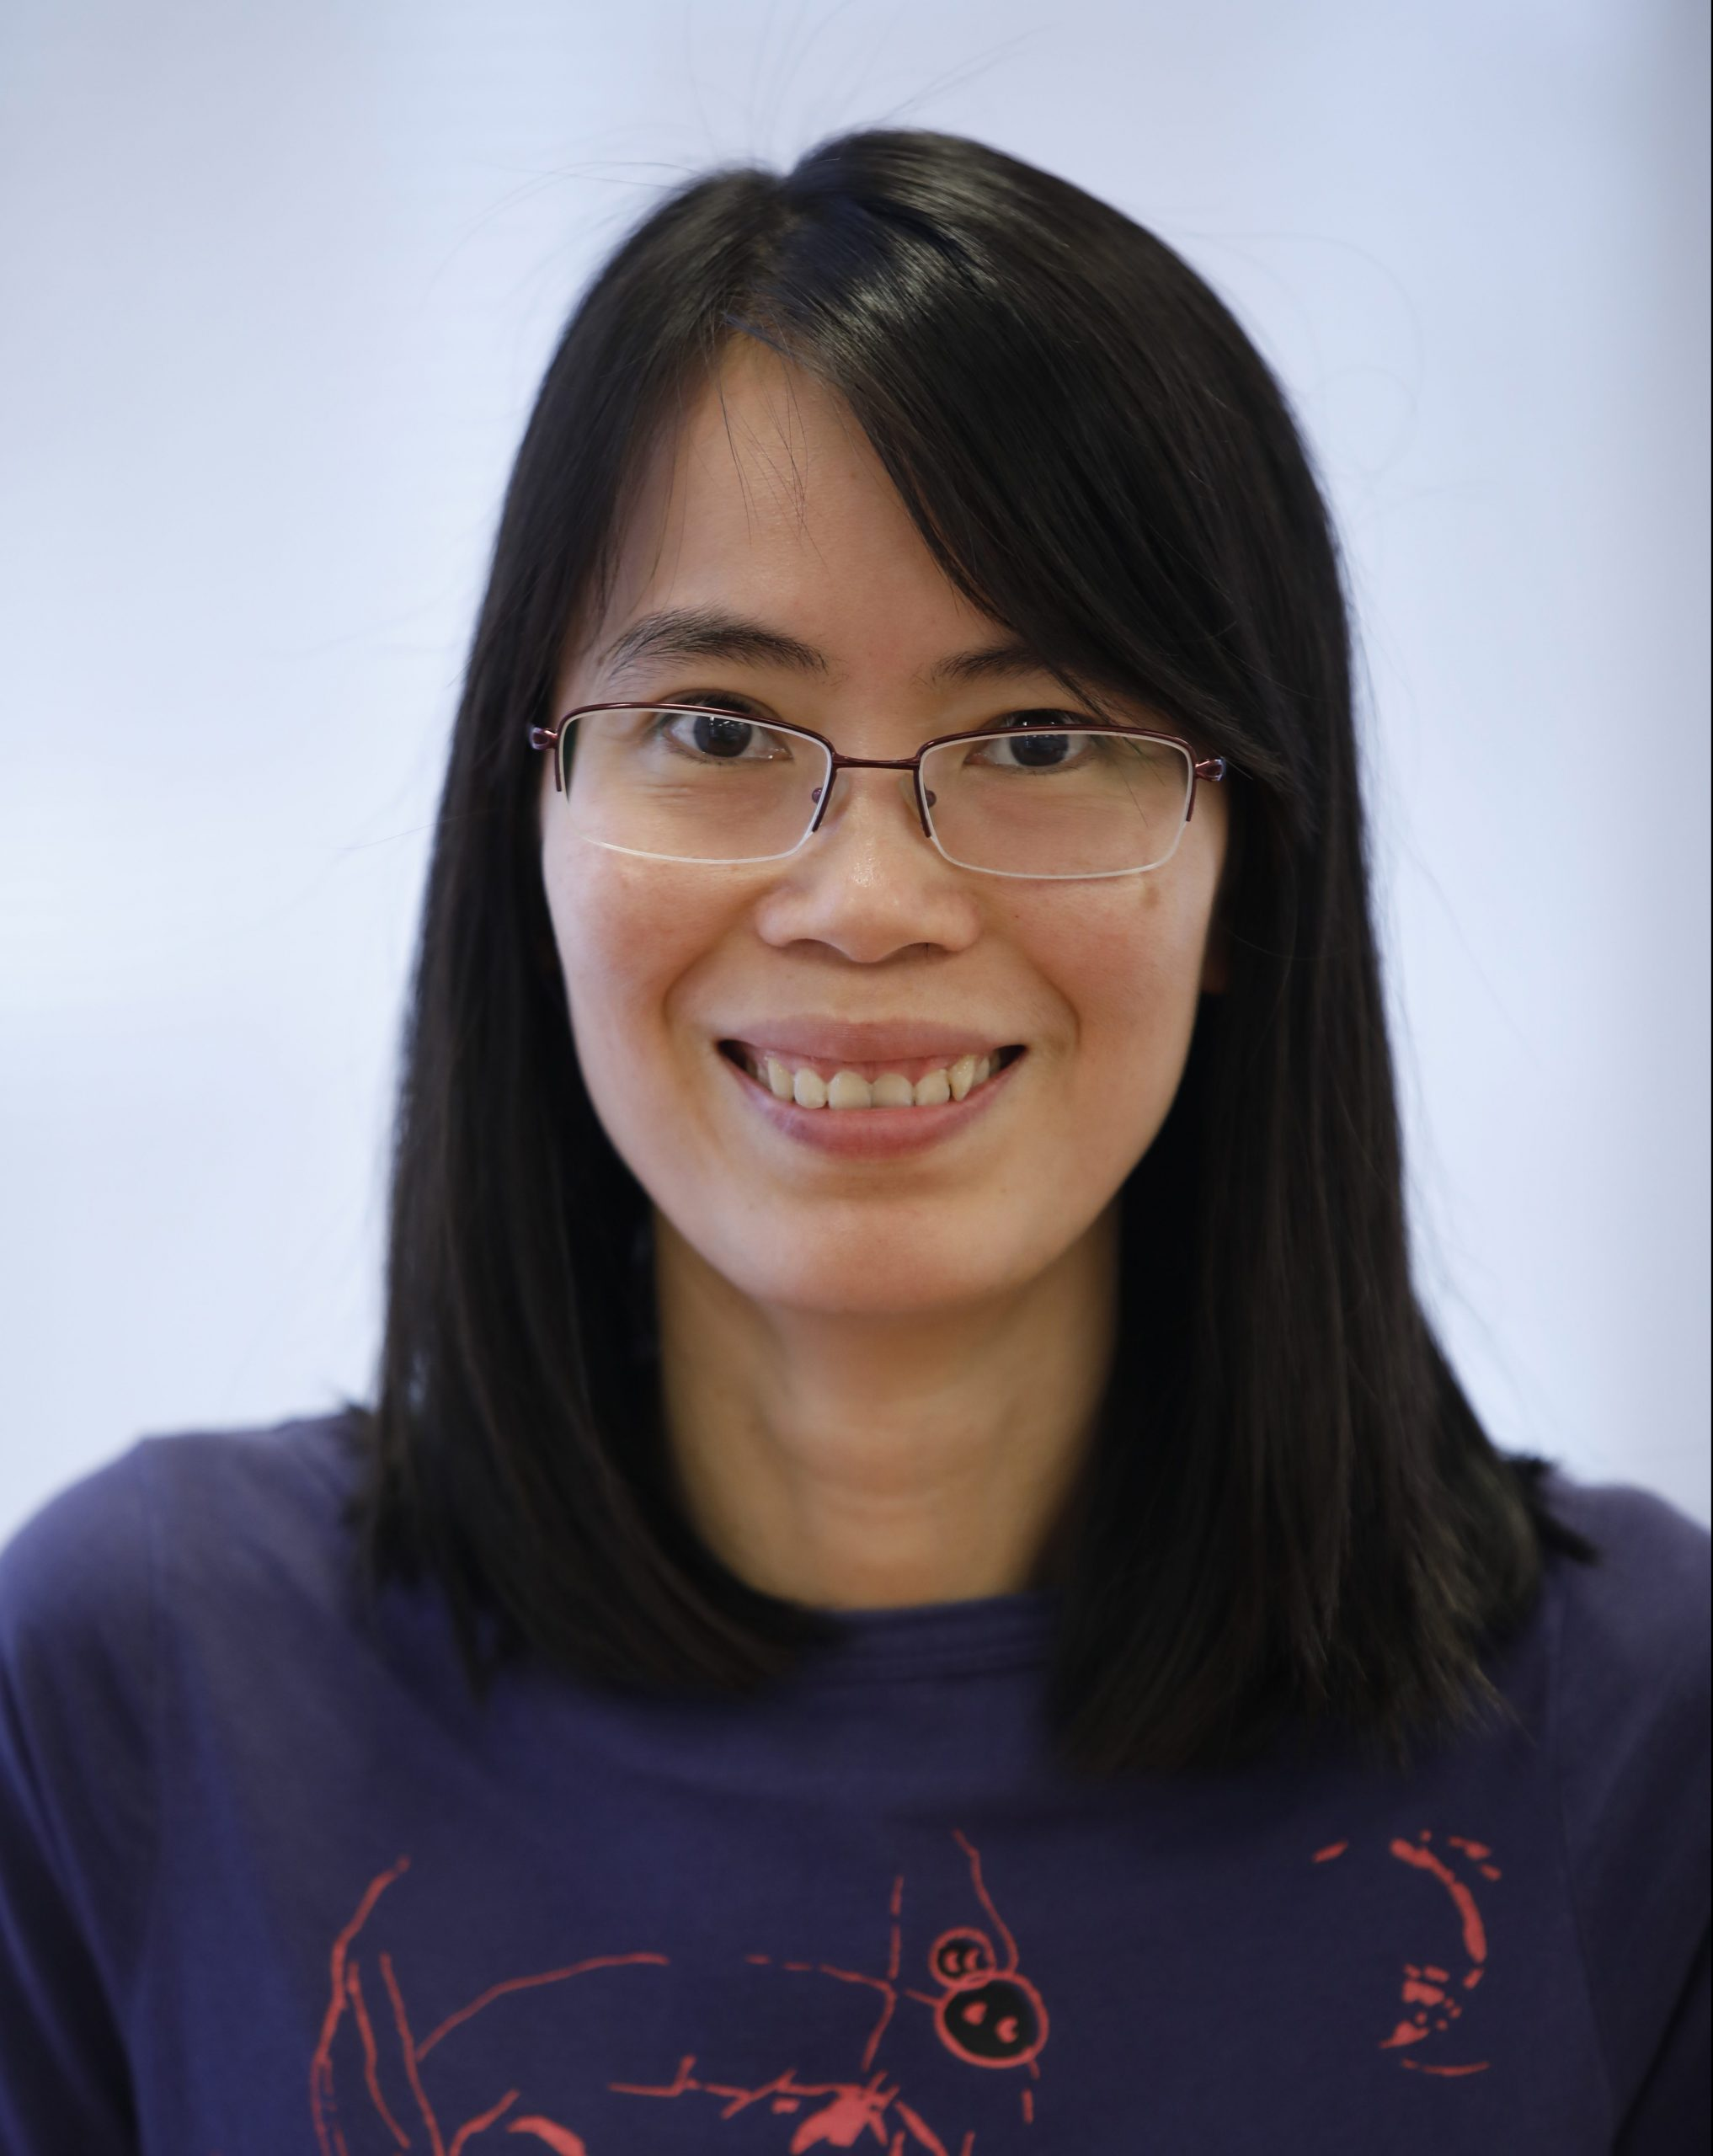 You are currently viewing Thi Thu Trang Nguyen, PhD